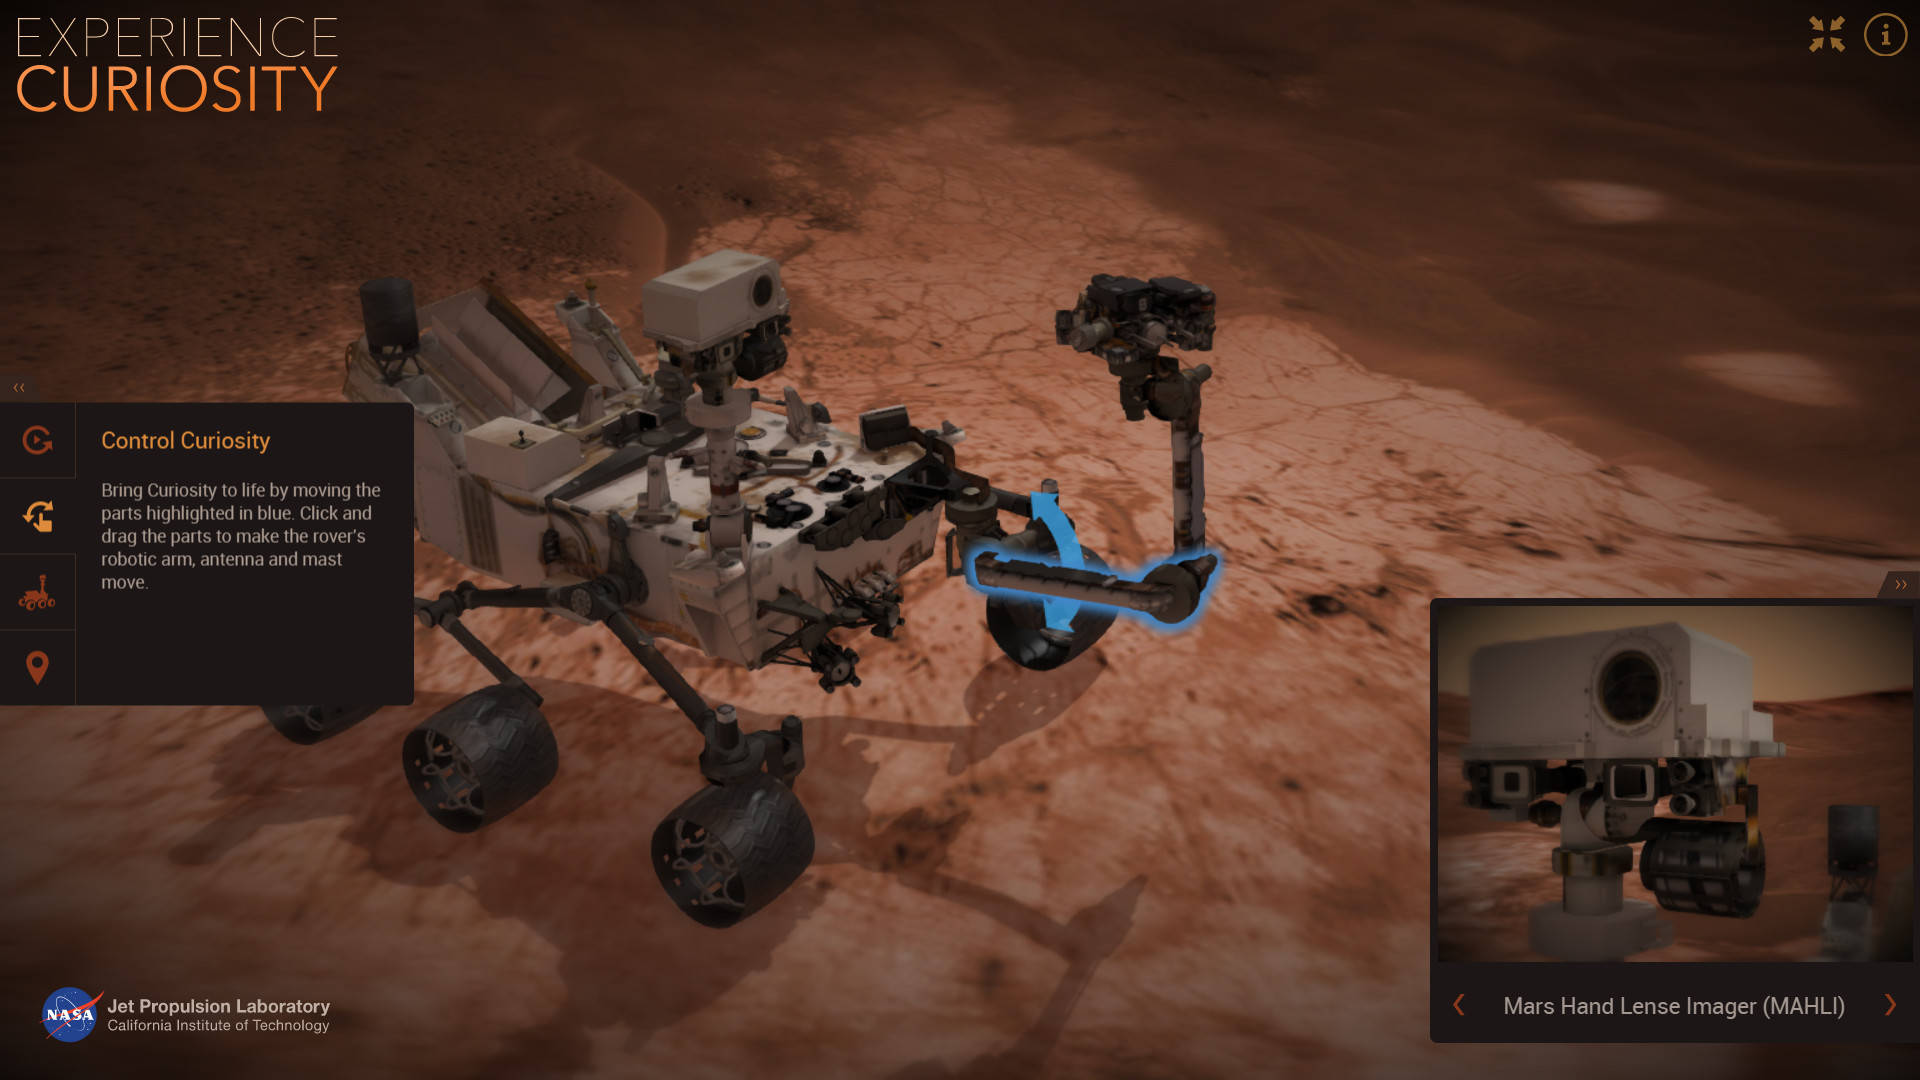 NASA_ExperienceCuriosity2